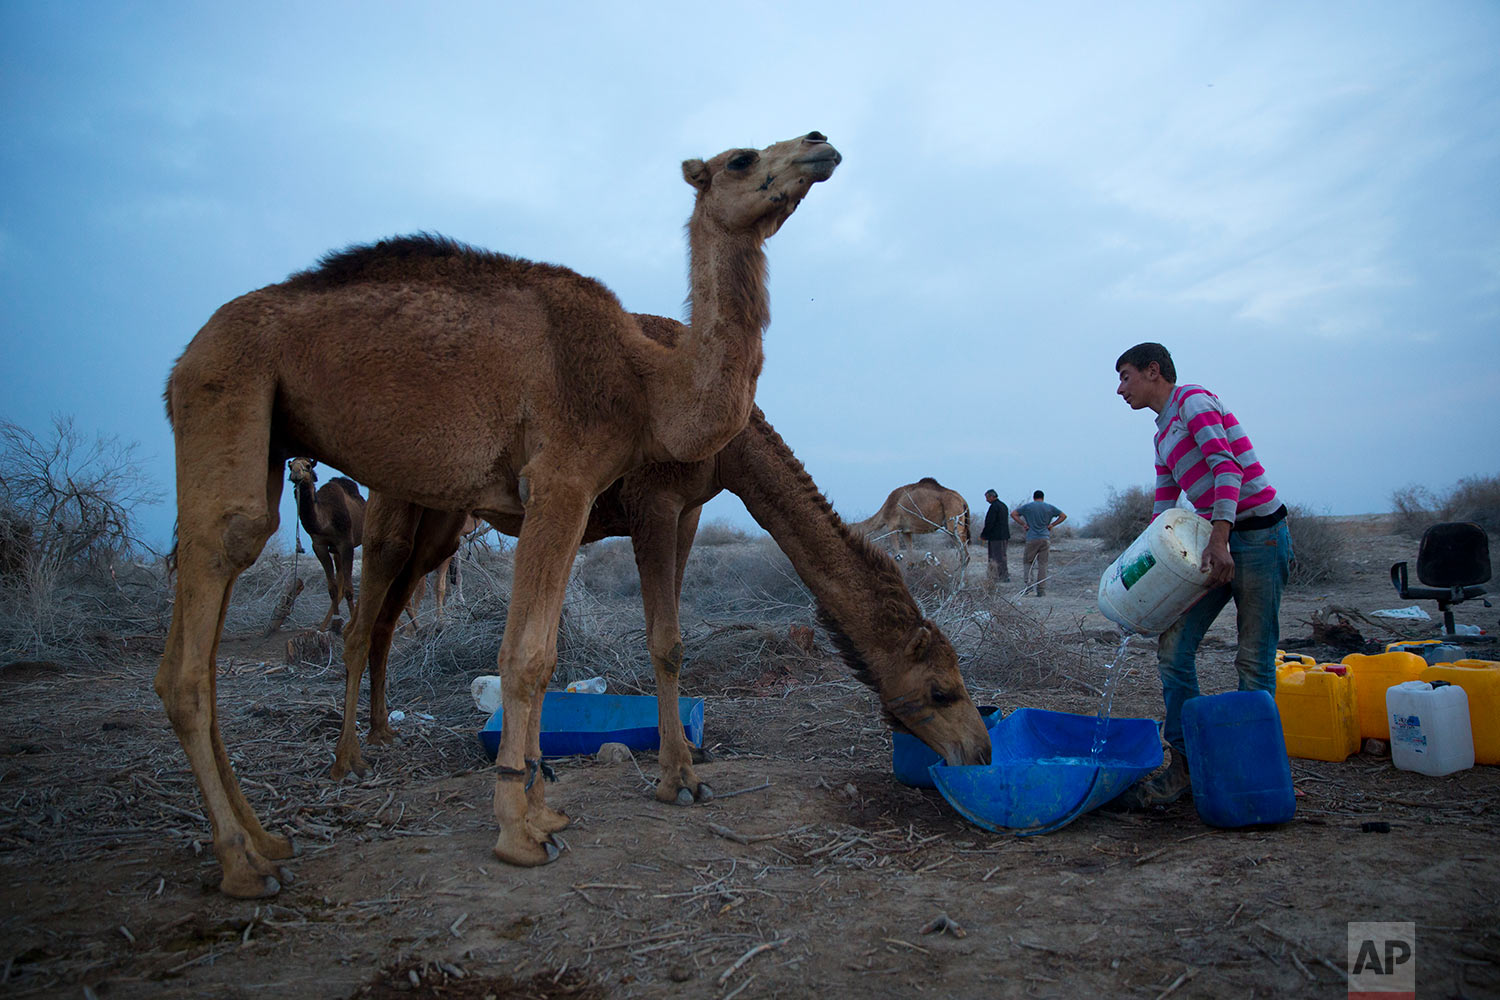 In this Monday, Jan. 22, 2018 photo, Beduin camels herder Mahmoud Zarlul fills water barrel for camels as they back to the night camp after grazing all day in the open field at the territory of Israeli Kibbutz Kalya, near the Dead Sea in the West Bank. (AP Photo/Oded Balilty)